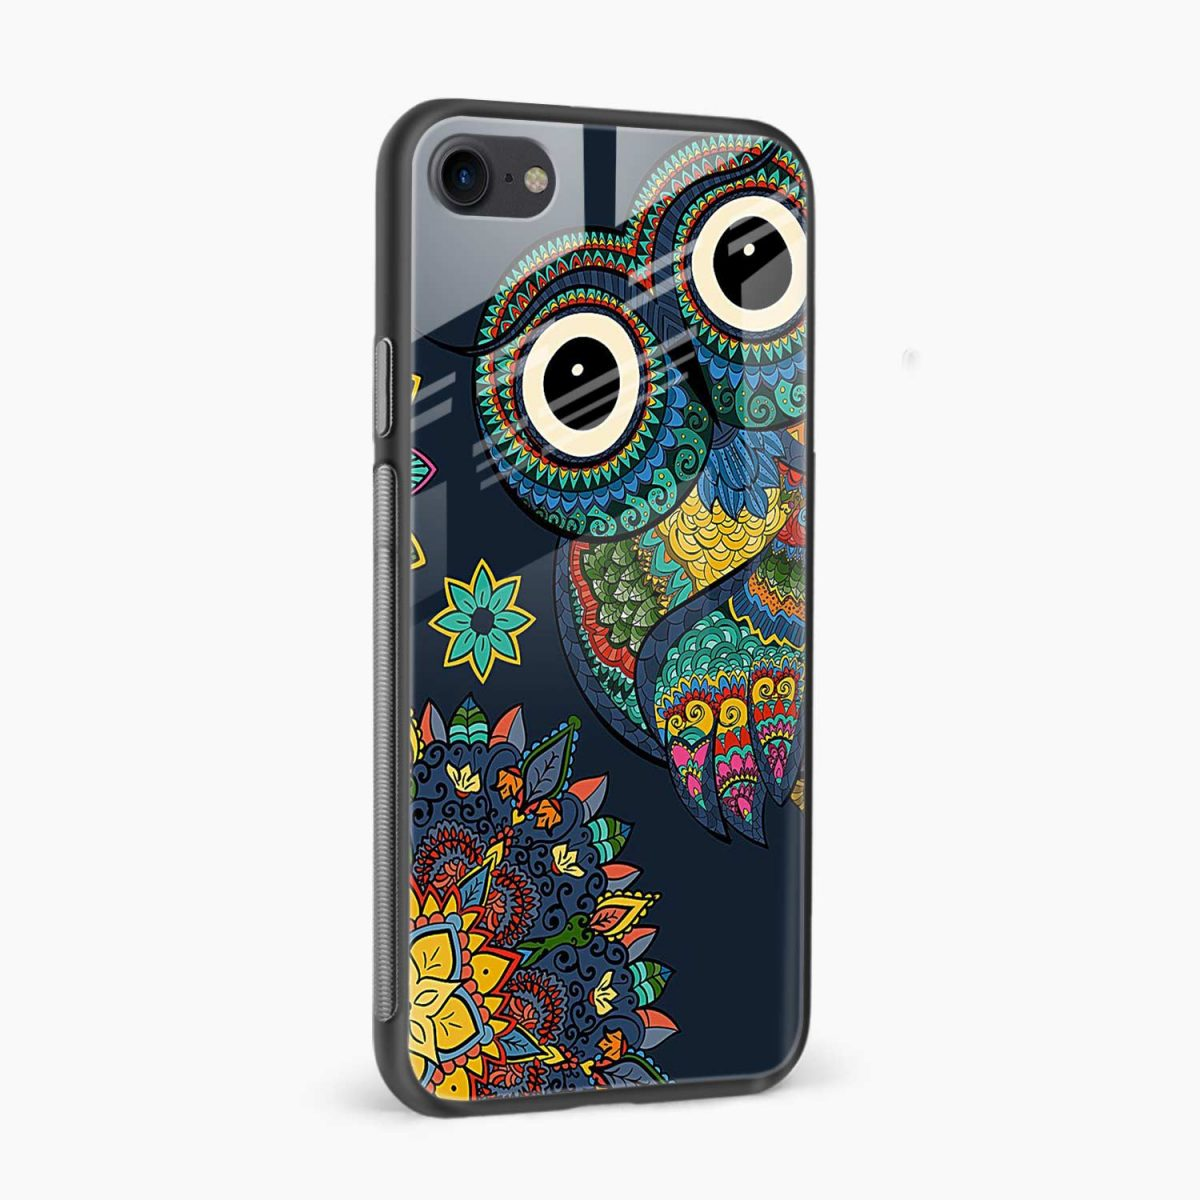 owl eyes side view apple iphone 6 7 8 se back cover